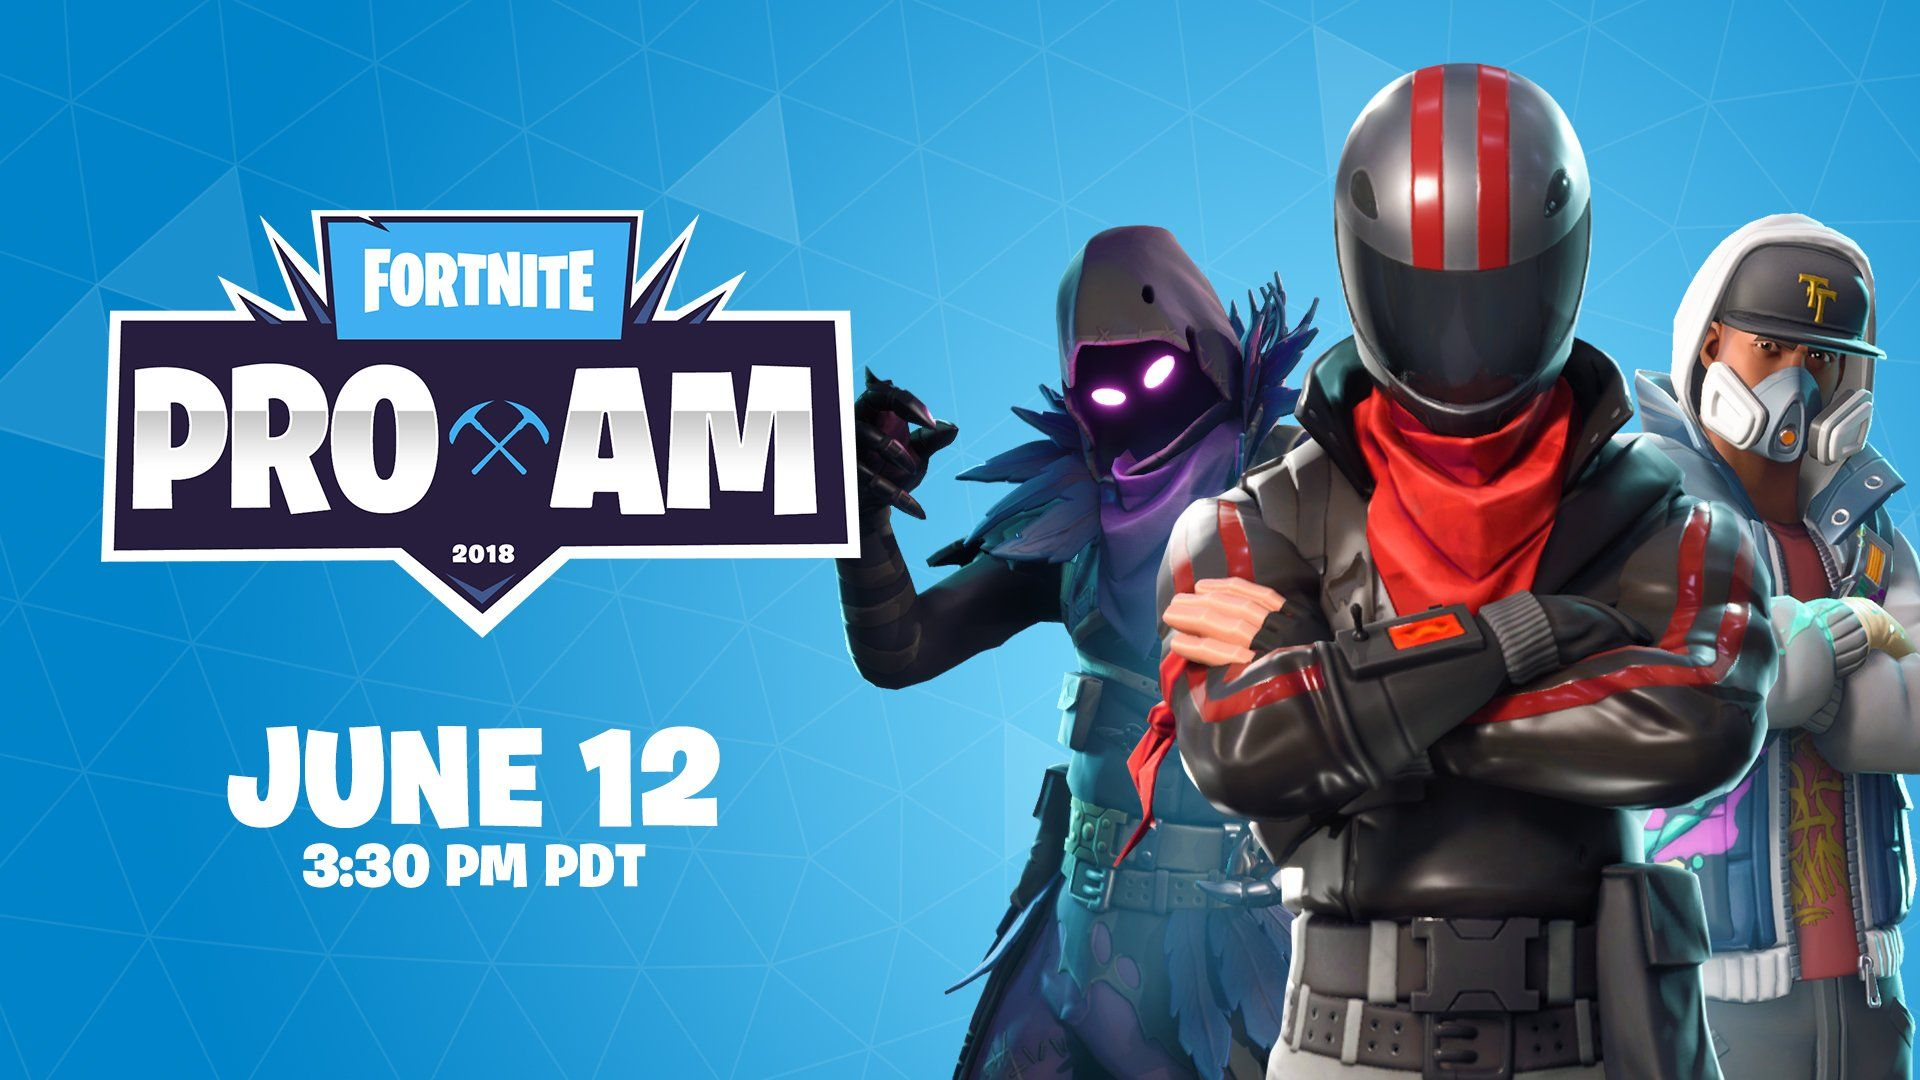 fortnite pro am results find out who won the e3 tournament - prince royce fortnite